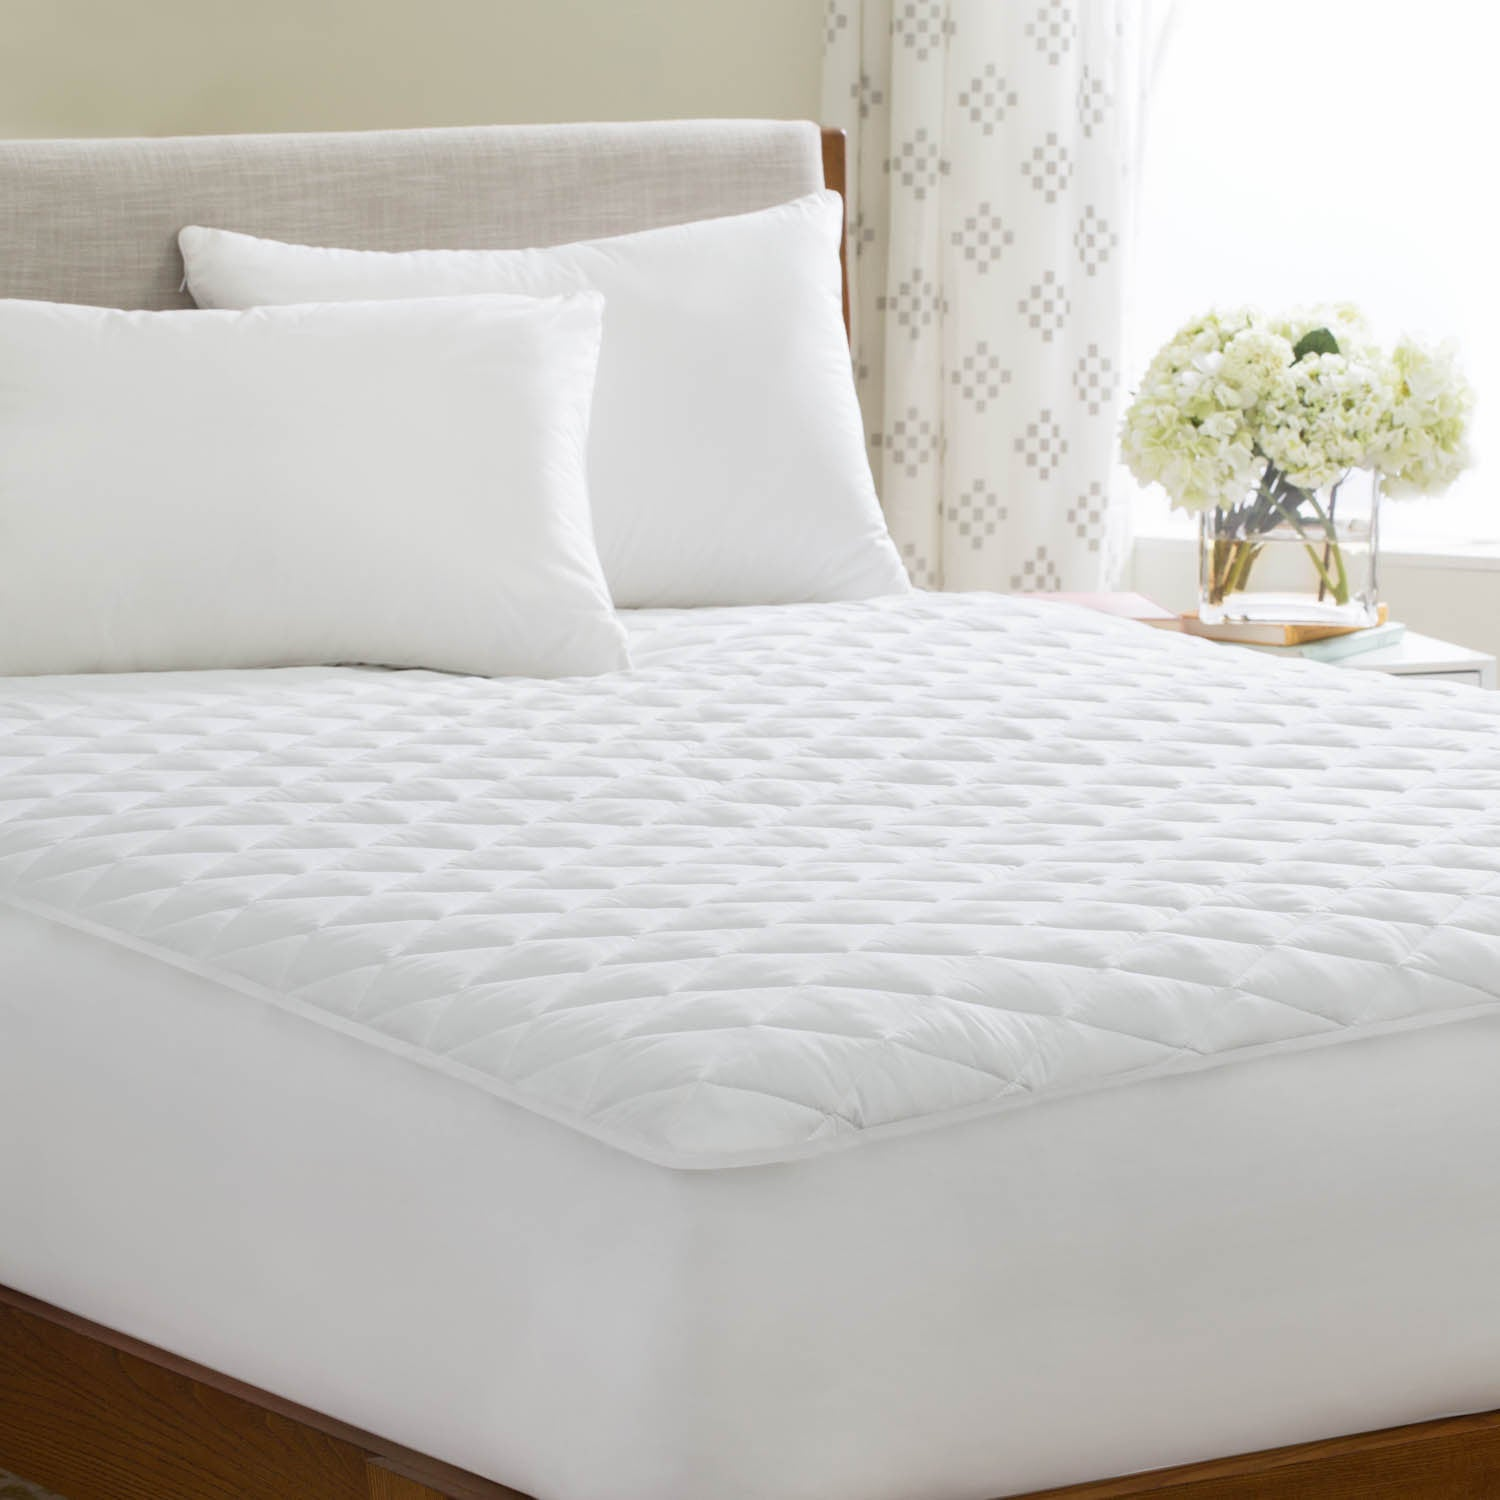 bath pdx wayfair pad reviews bed elle mattress polyester decor